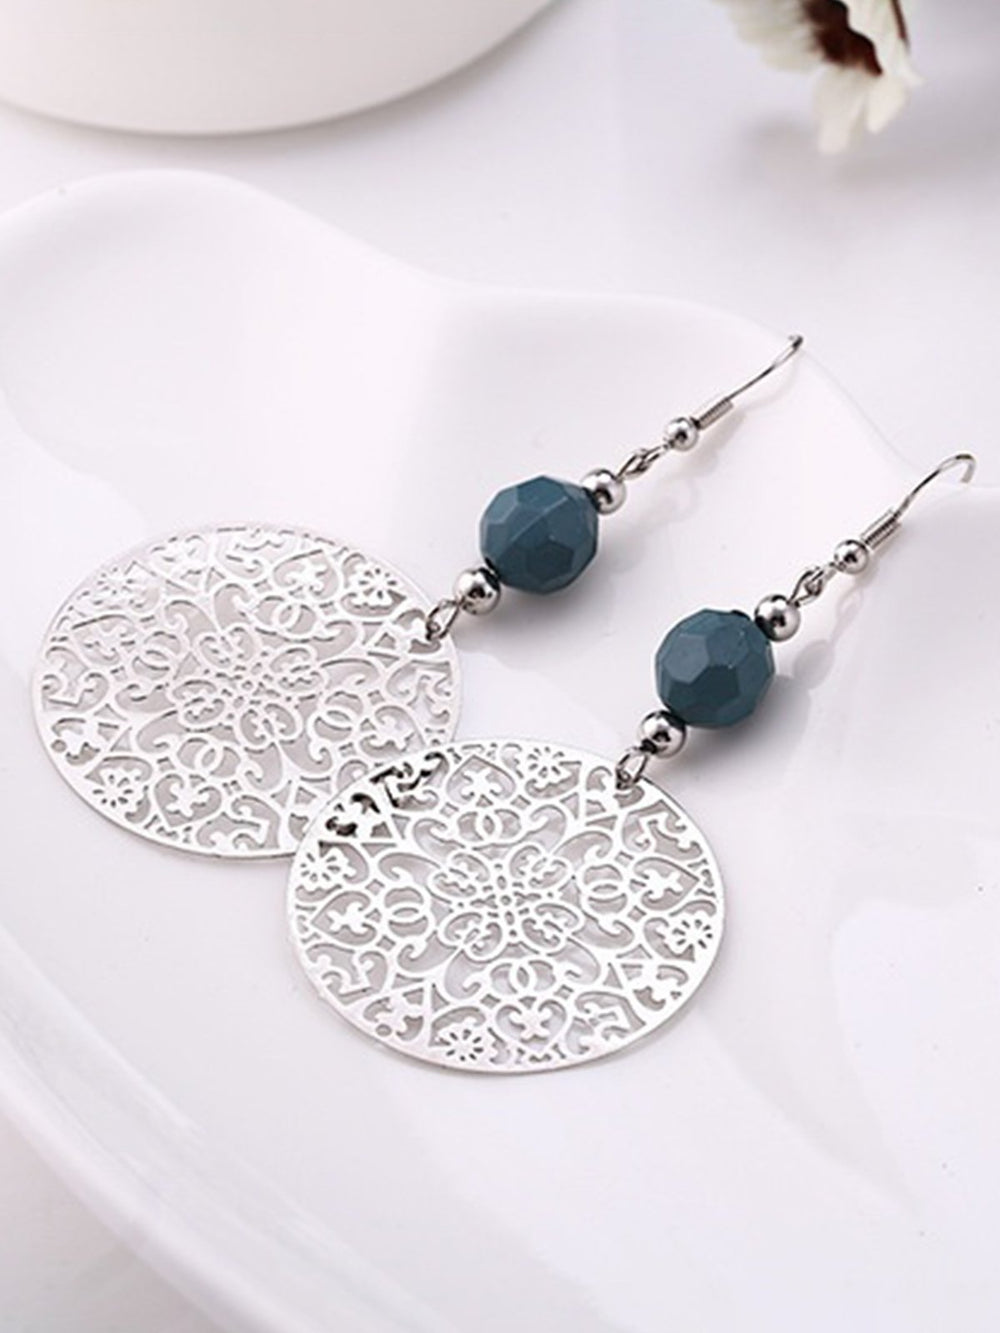 New Fashion Tribal Jewelry Vintage Silver Big Round Earhook Retro Flower Pendant Earrings Women